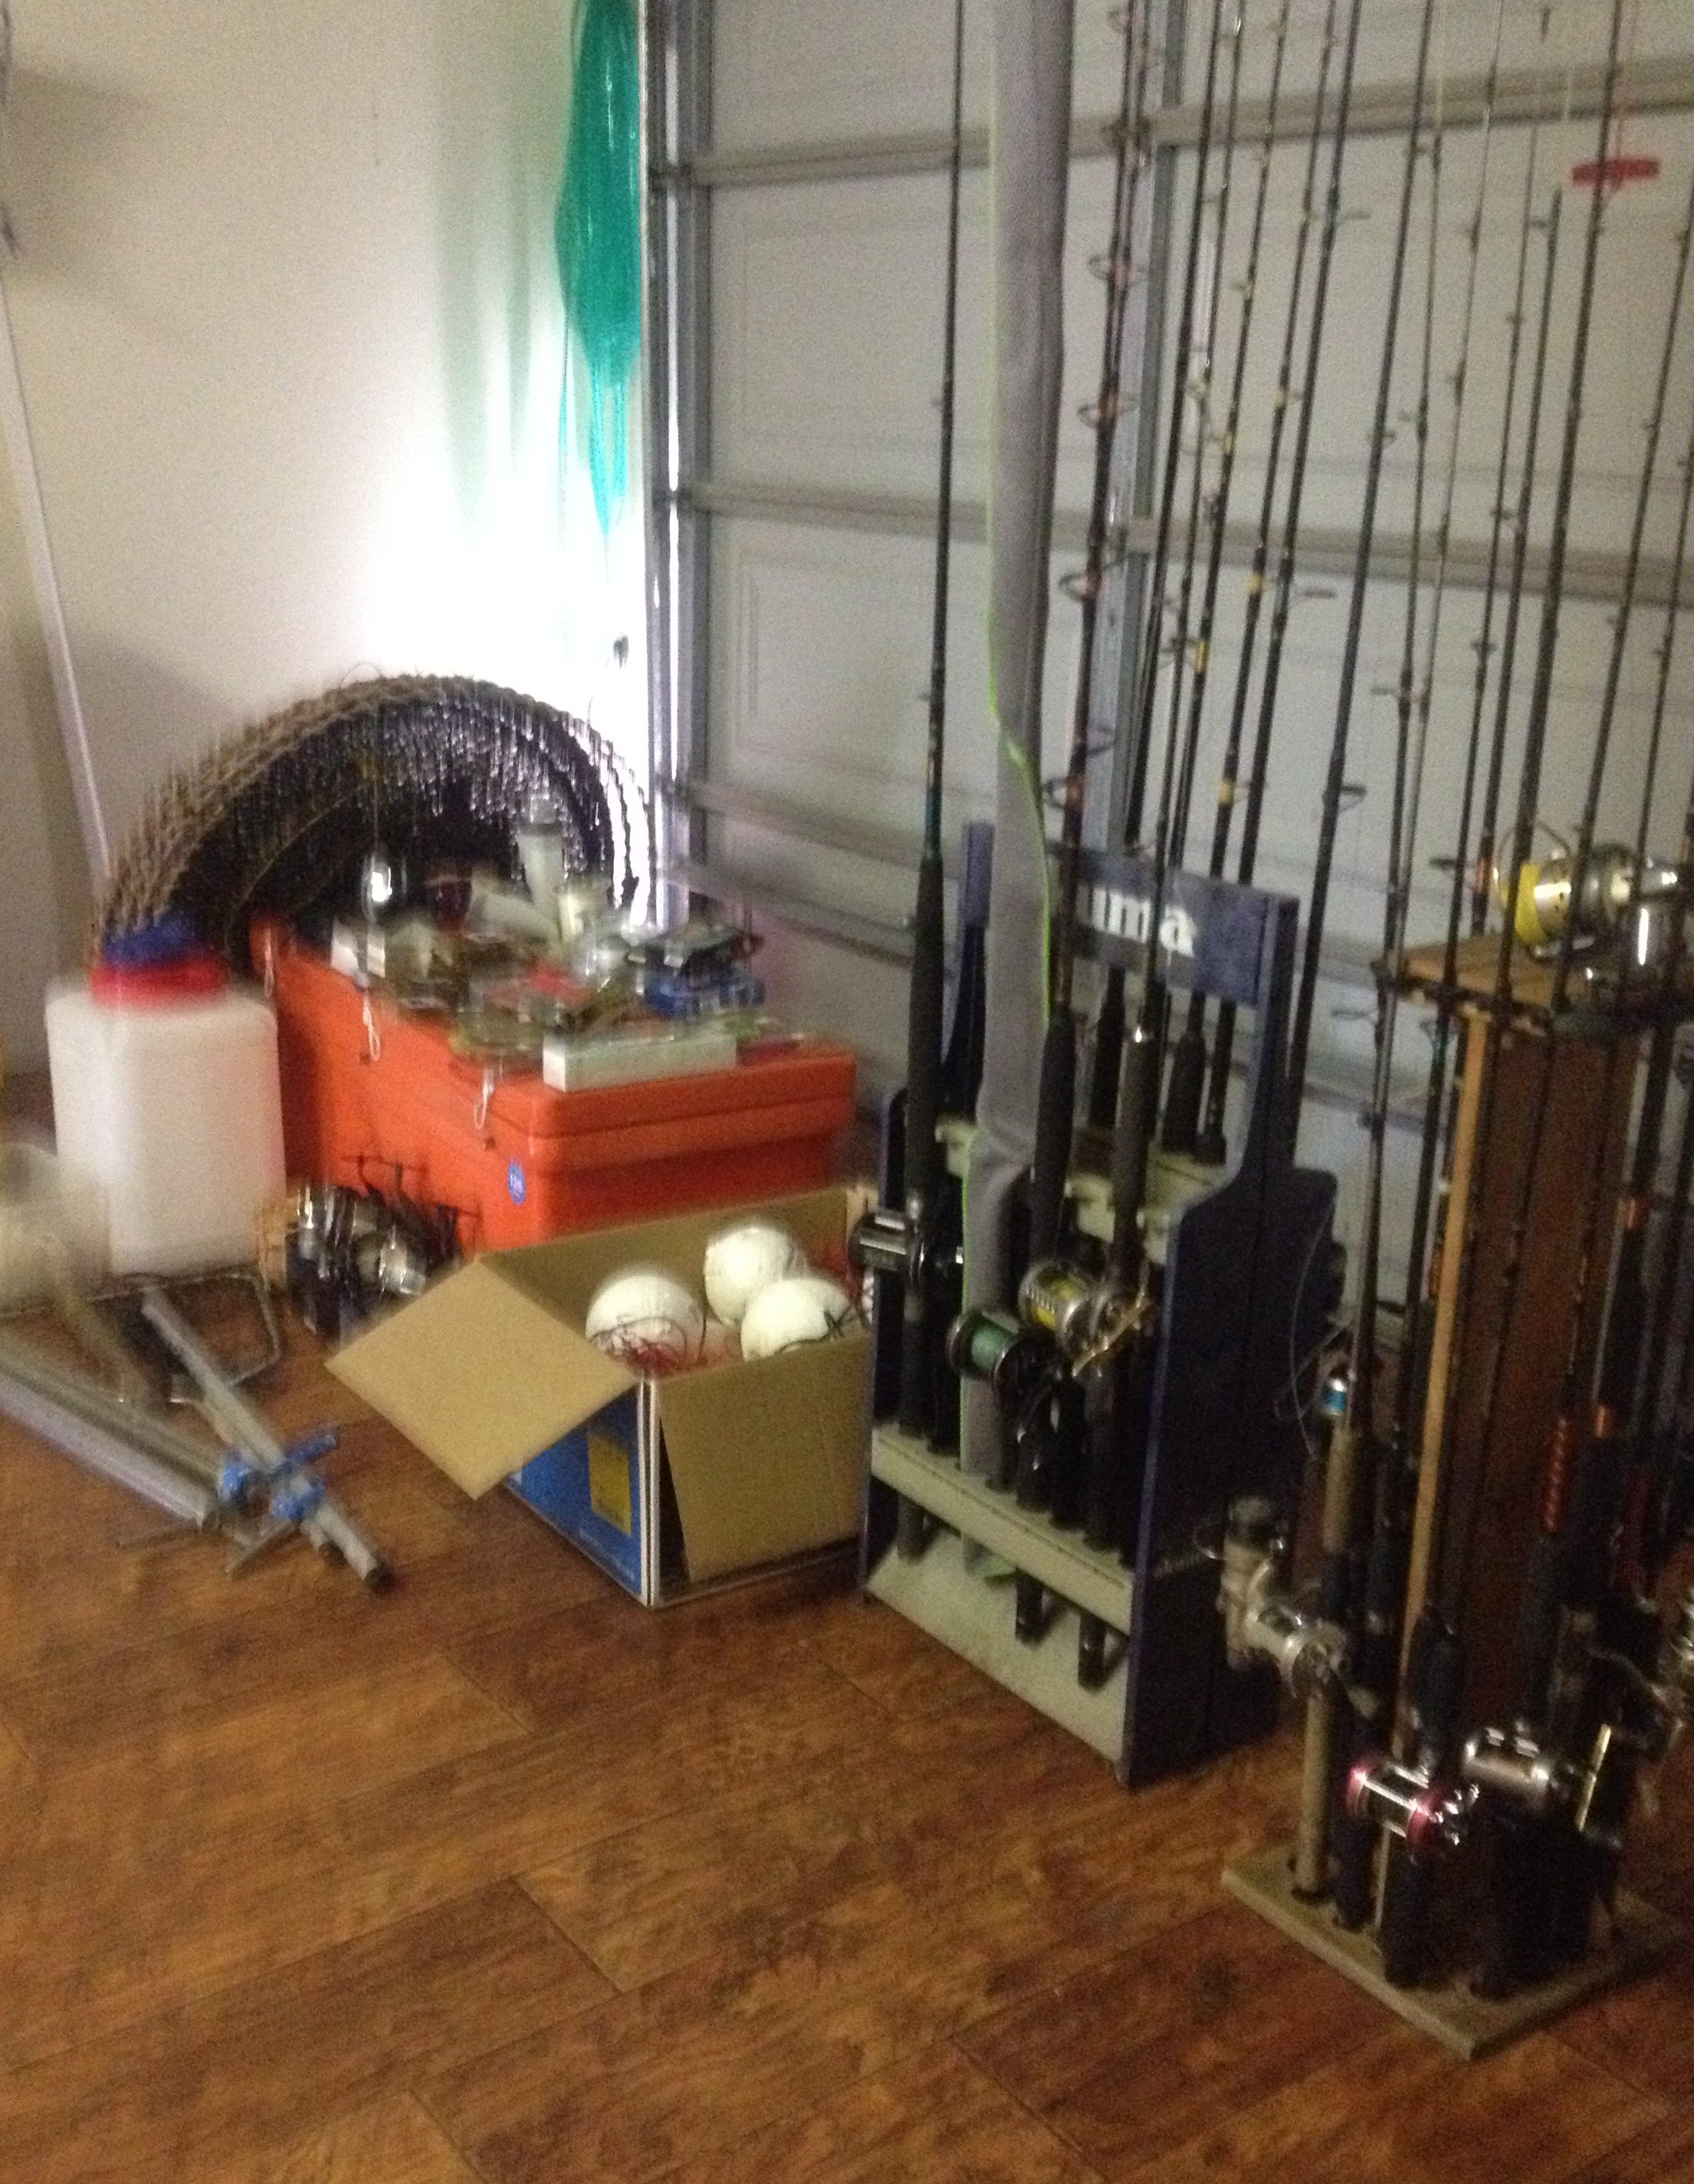 Moving away - Everything must go Huge selection of Fishing rods and tackle Eskies Kitchen appliances Crockery Glasses Cutlery Electric tools Hand held tools Bottles and drums for home brewing spirits Gardening tools Chainsaws Shed shelving Swags and lots more